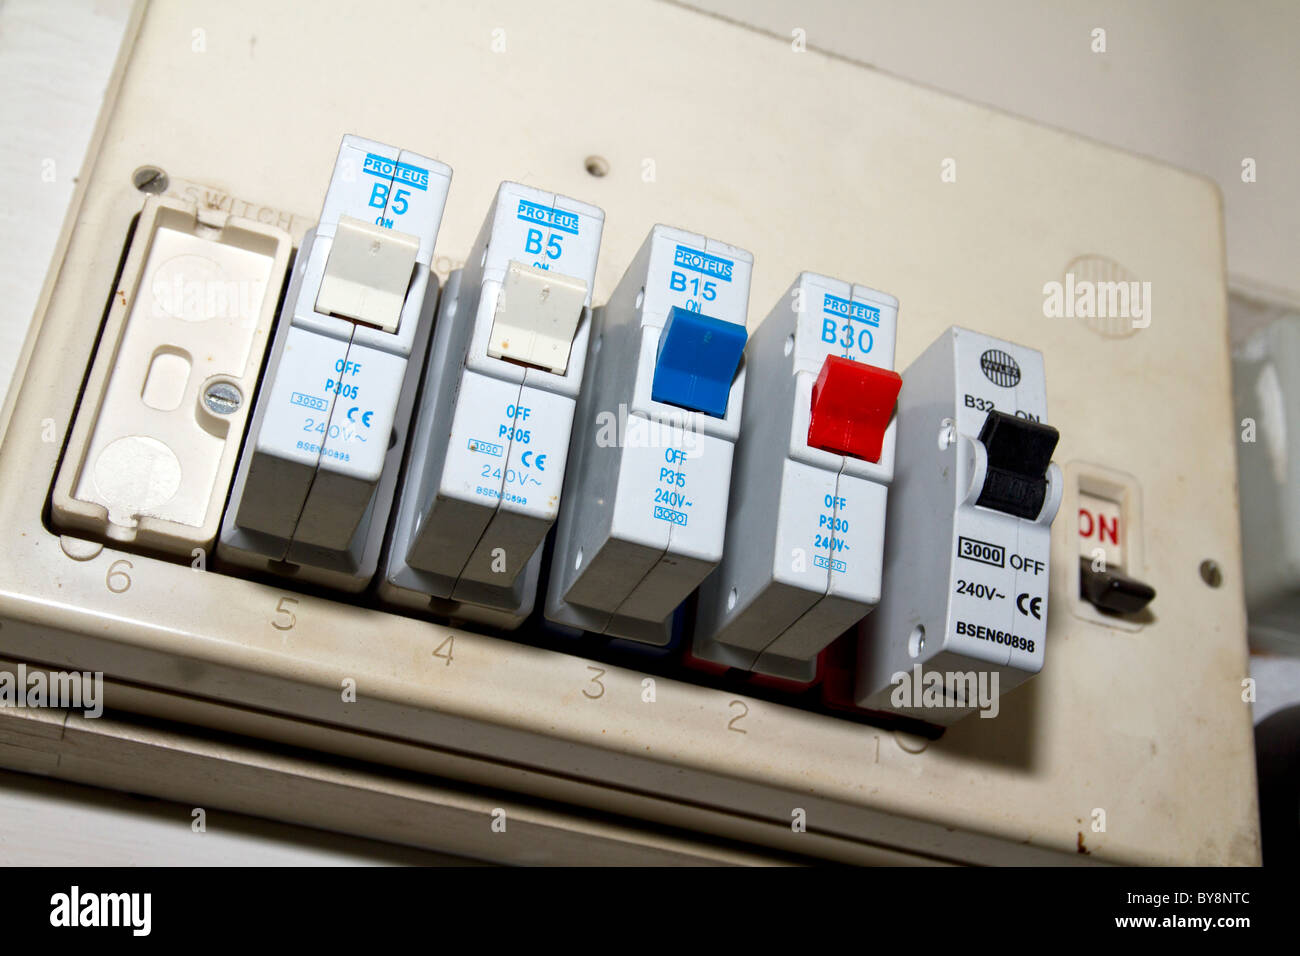 electric fuse box stock photos & electric fuse box stock images alamy uk fuse box explained uk old electric fuse box in a london house stock image